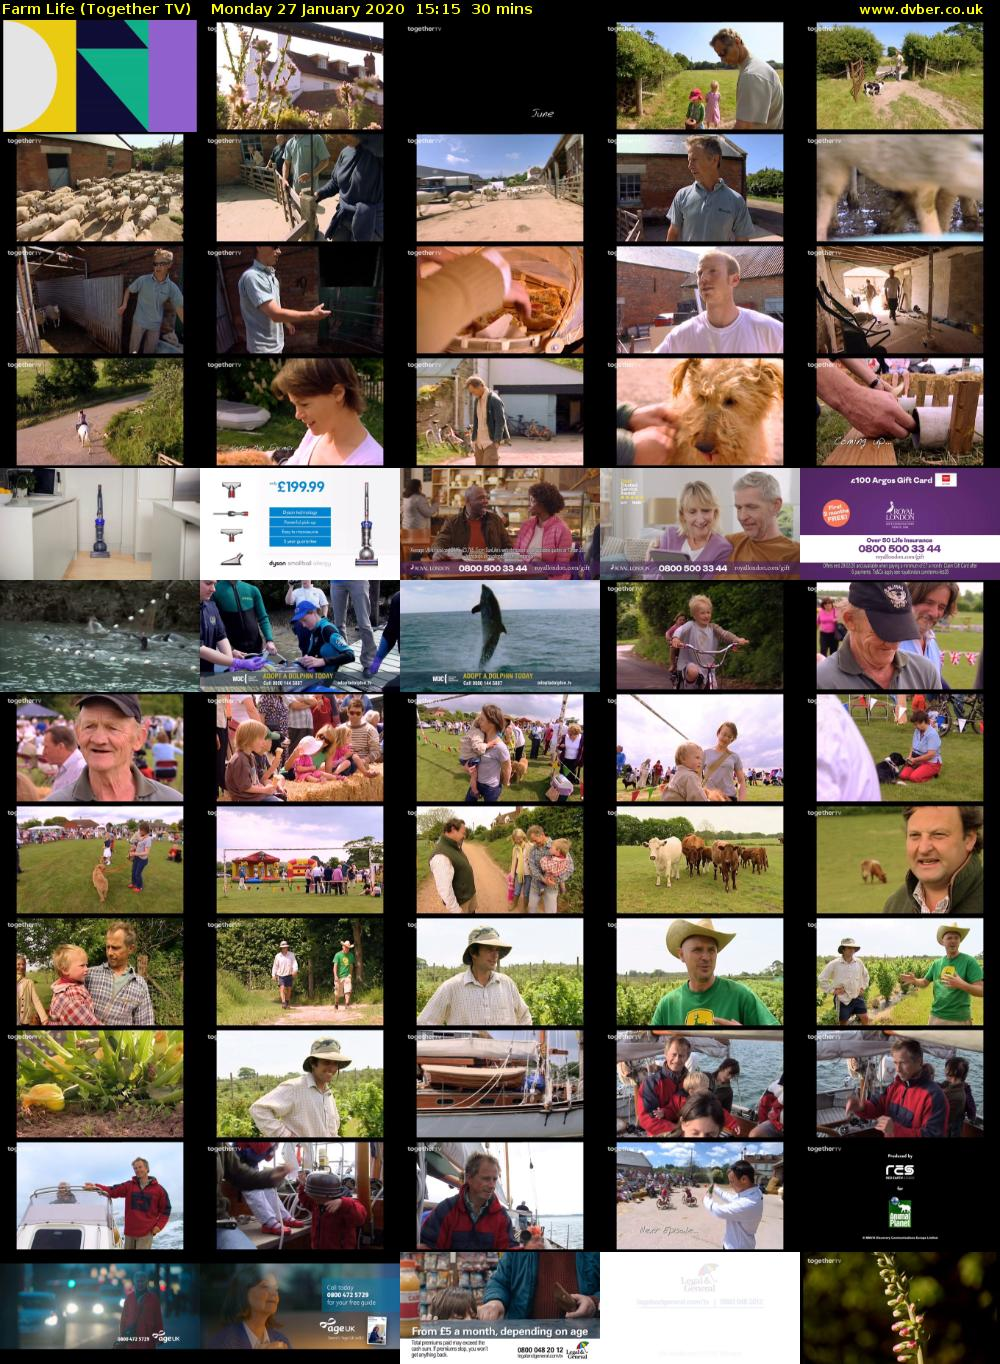 Farm Life (Together TV) Monday 27 January 2020 15:15 - 15:45